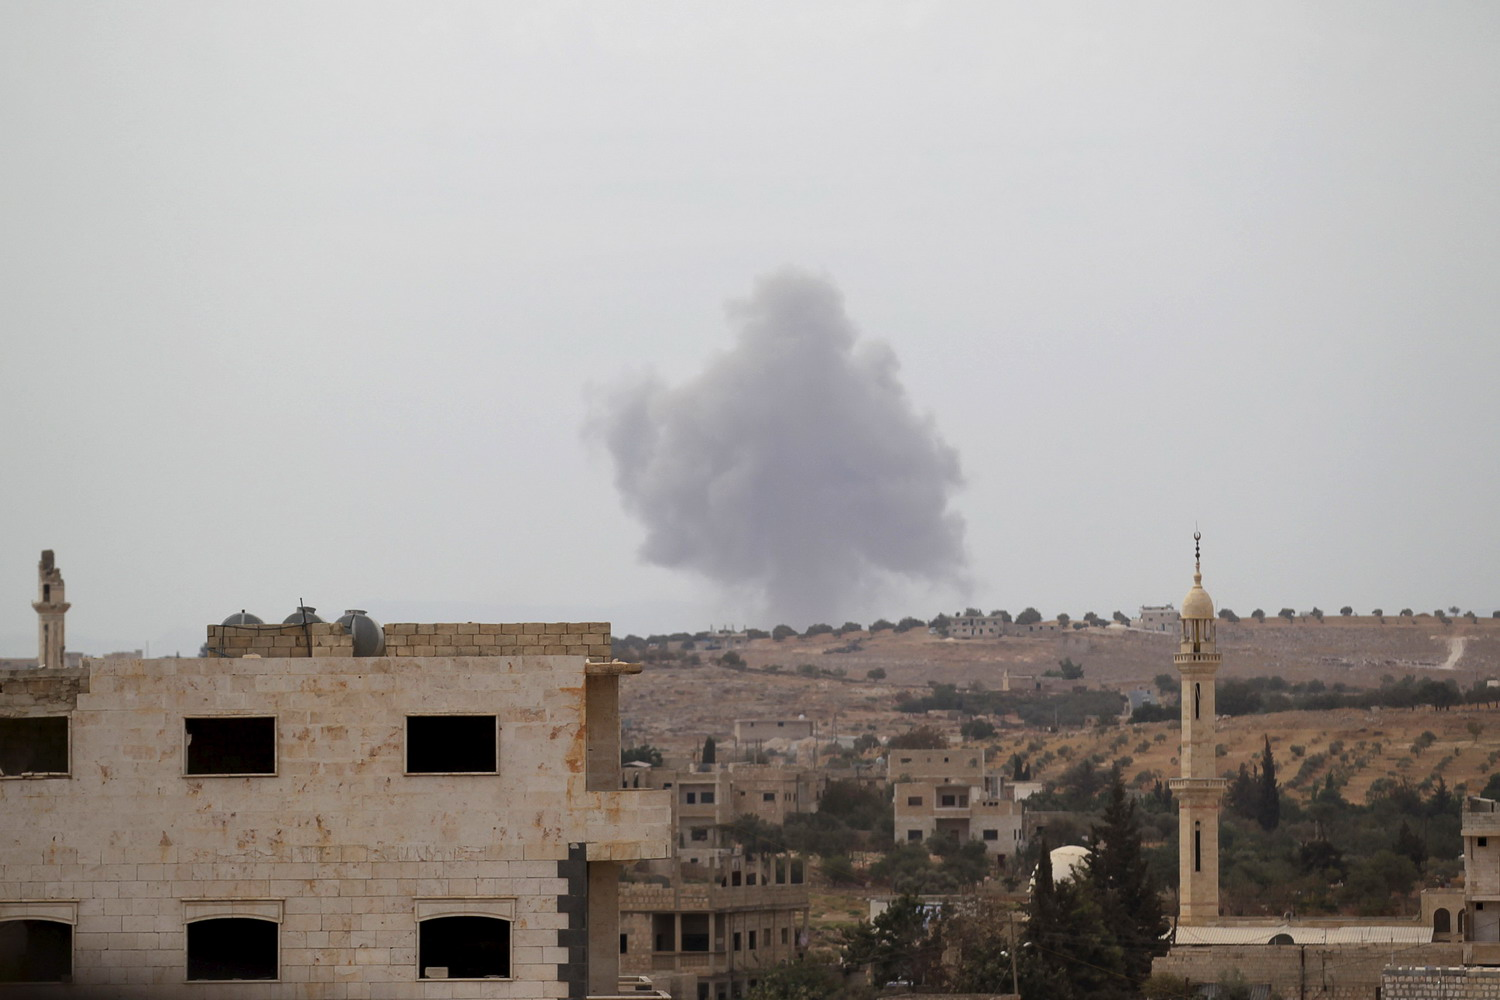 Russian warplanes target insurgents in Syria but not Islamic State